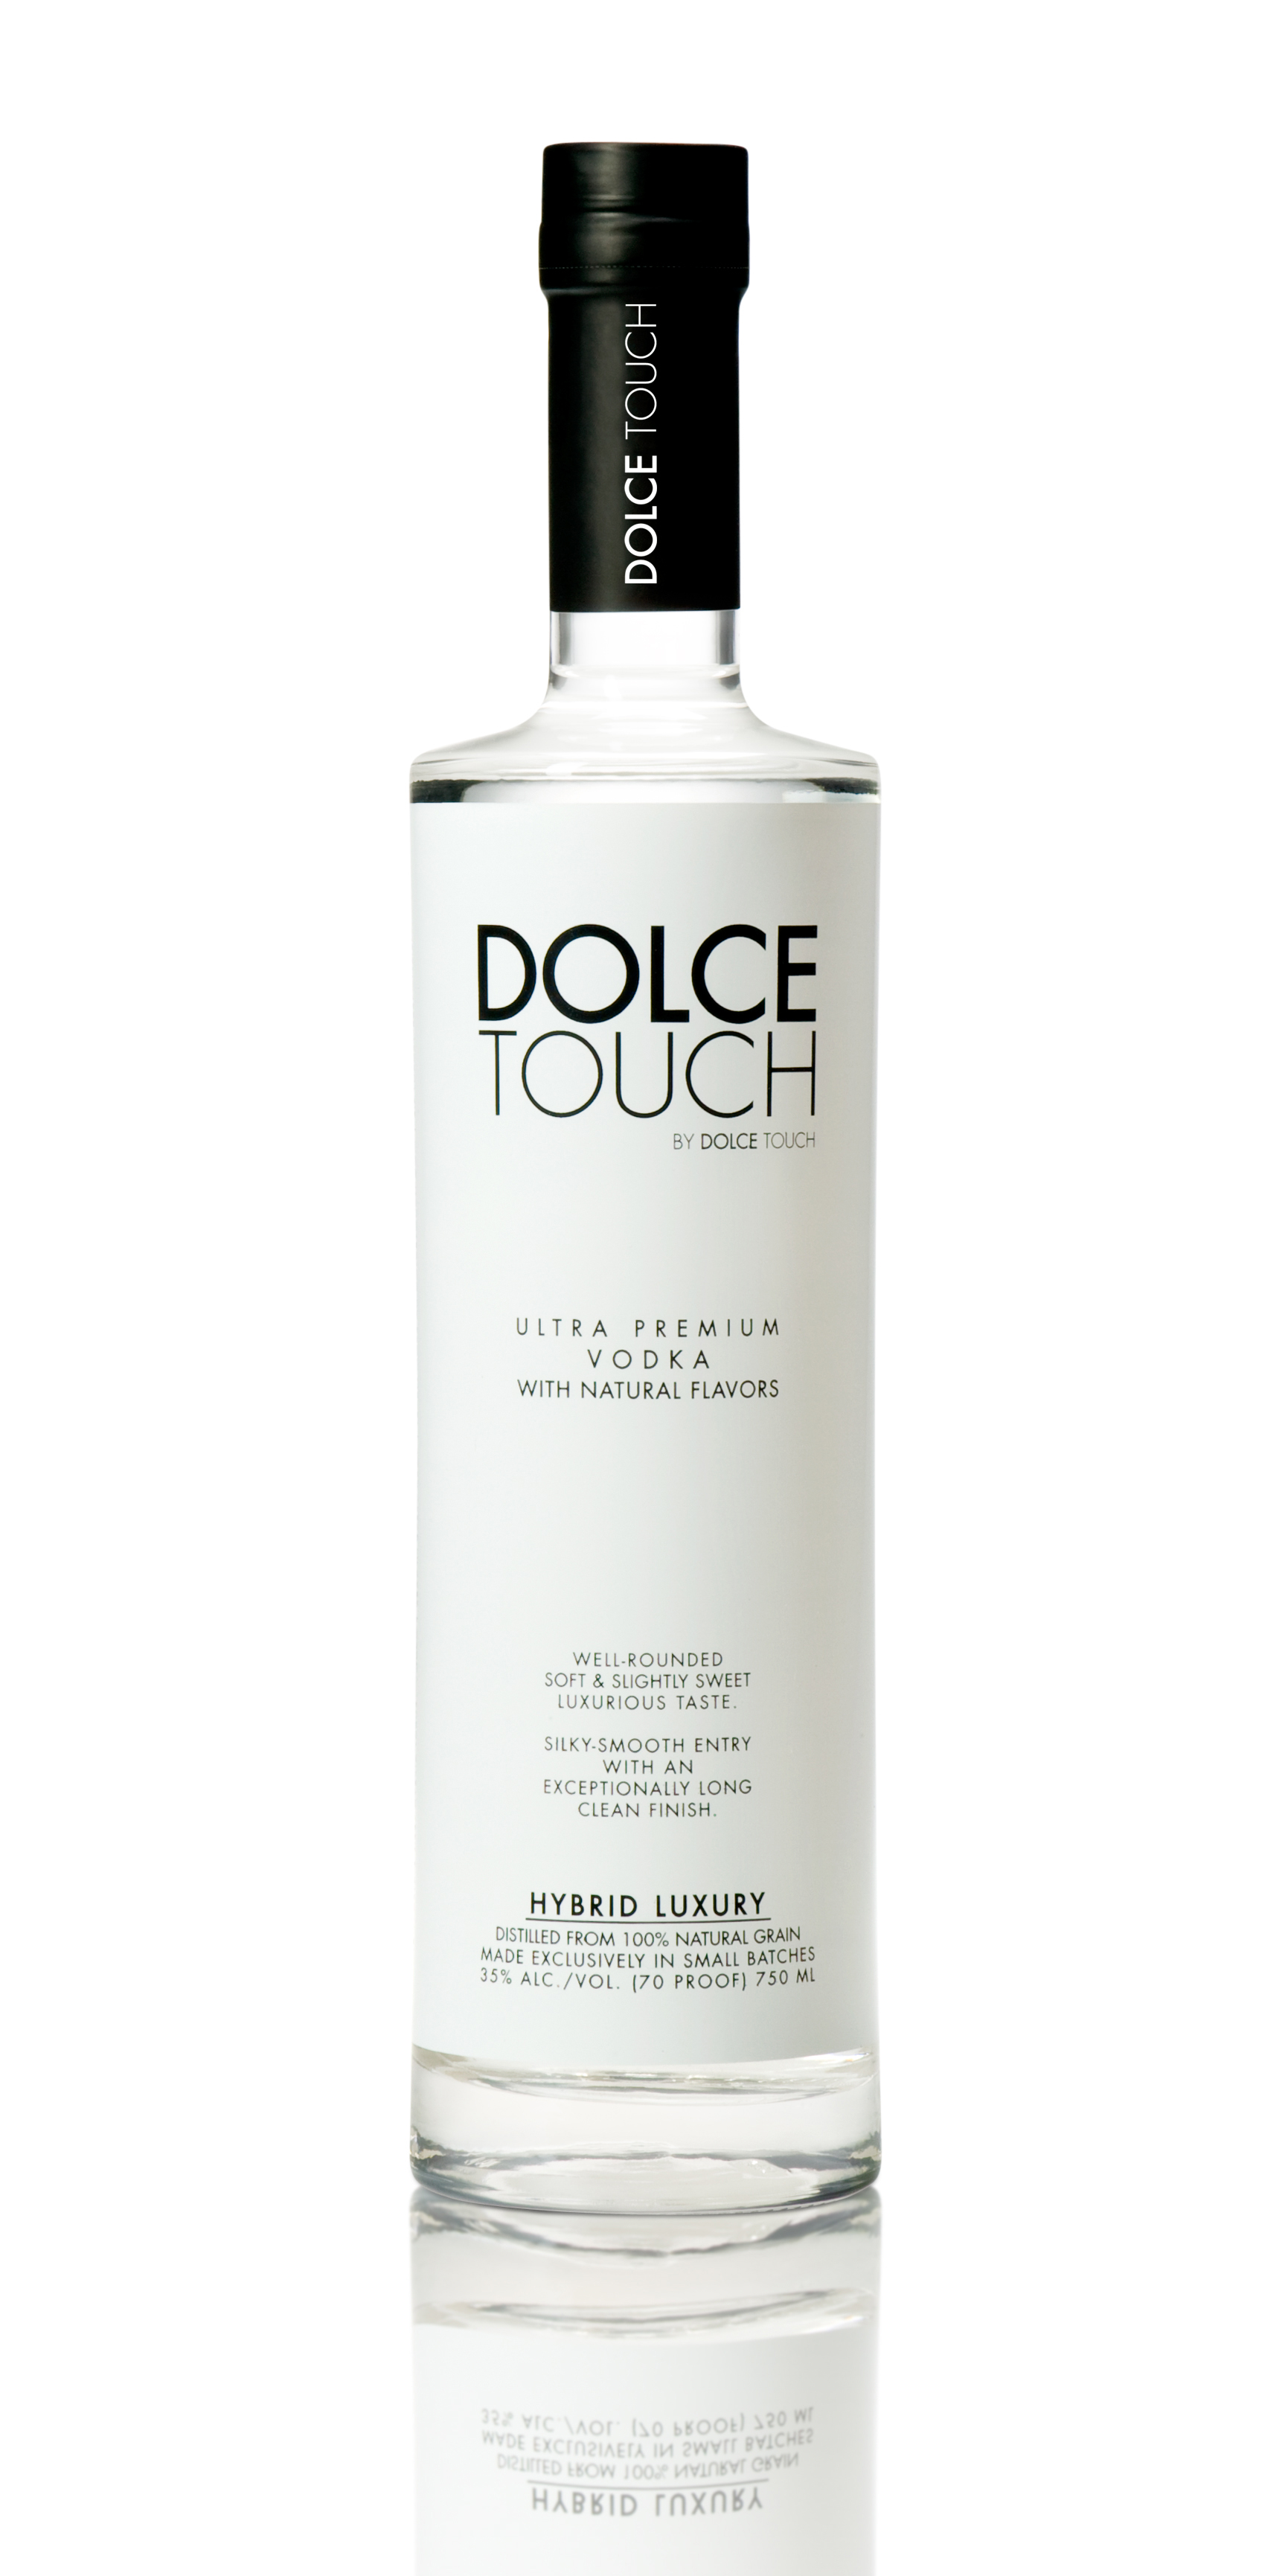 dolce touch hybrid luxury vodka wins the highest medal at the 2010 sip awards. Black Bedroom Furniture Sets. Home Design Ideas